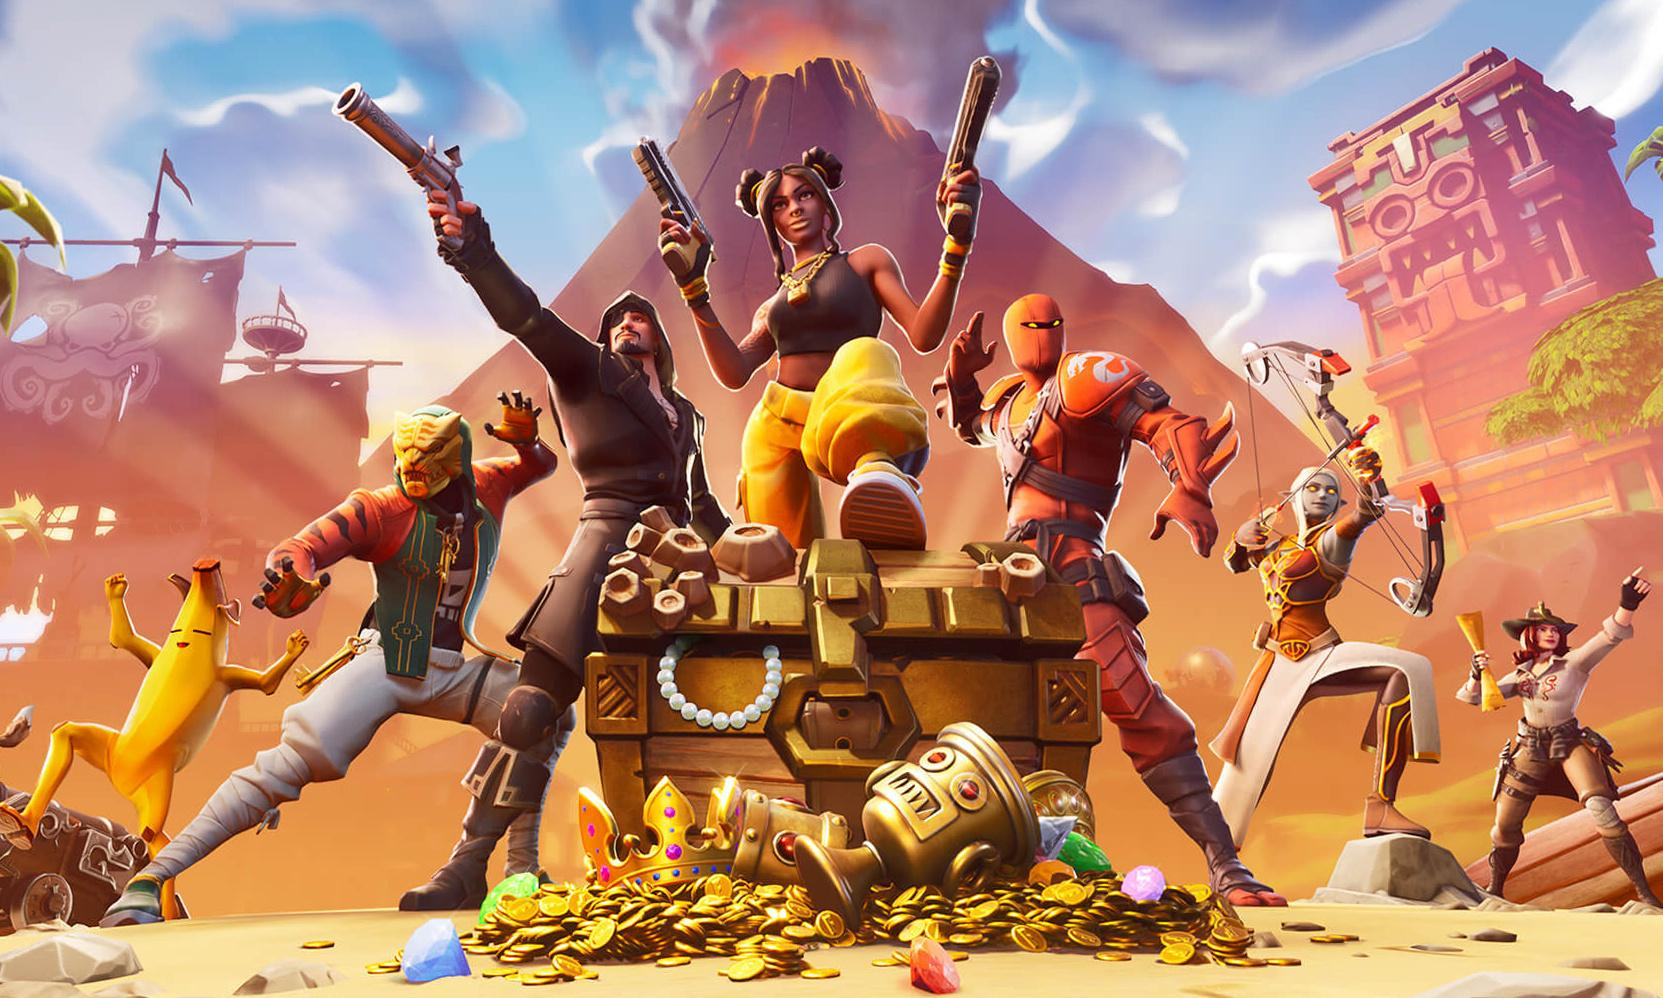 Don't fear the rise of Fortnite and other video games – they bring young people together